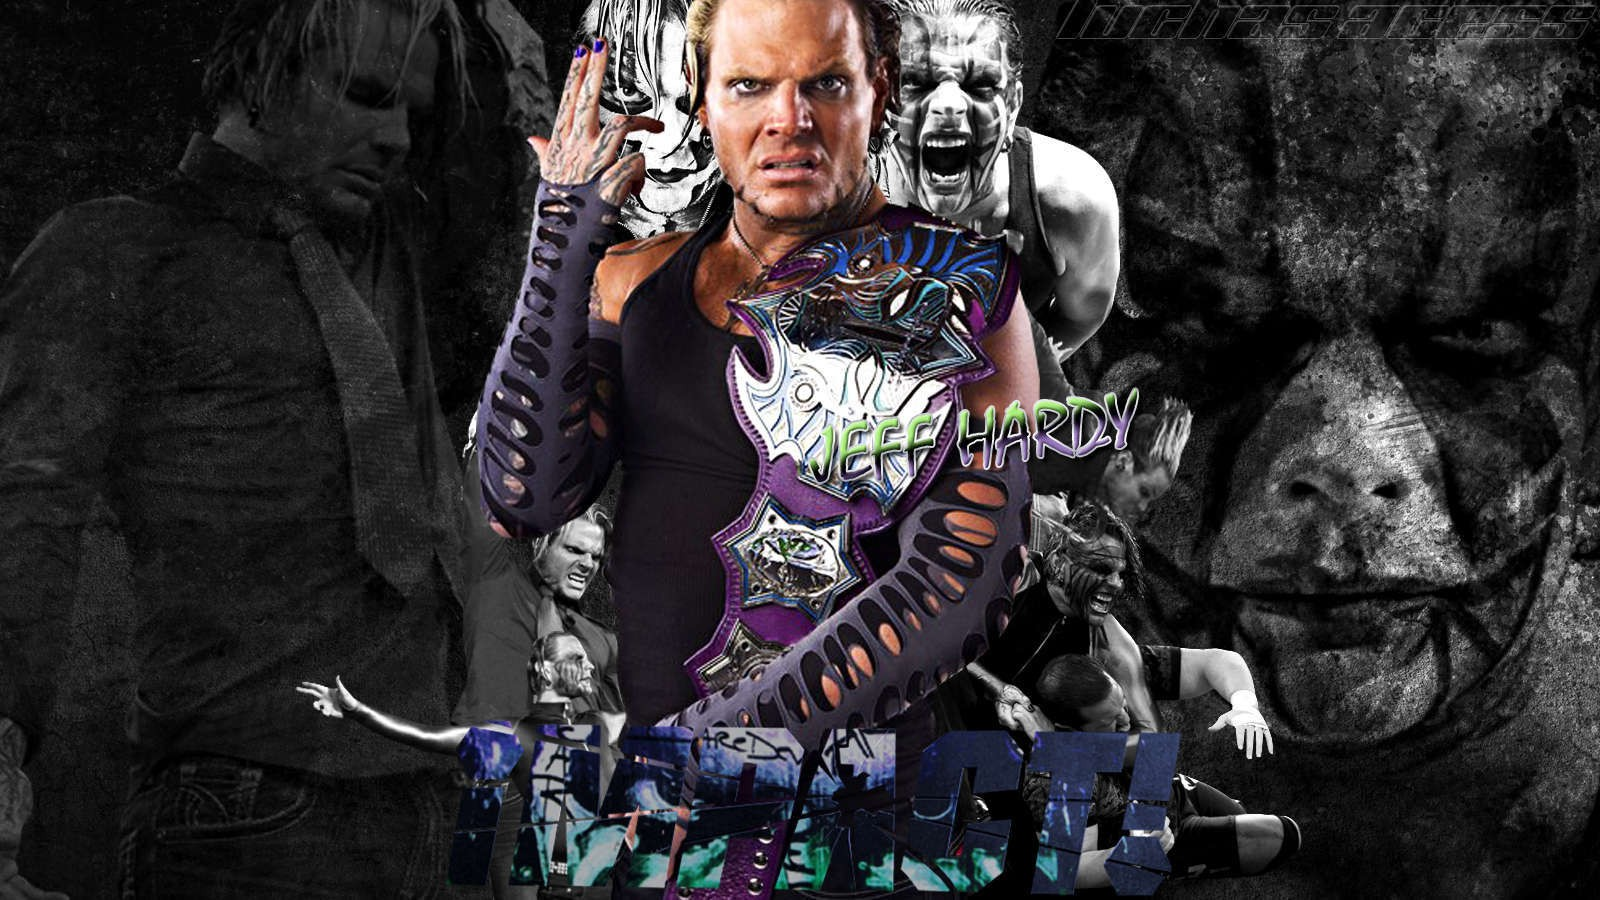 jeff hardy wwe superstar hd enigma 3d wallpaper